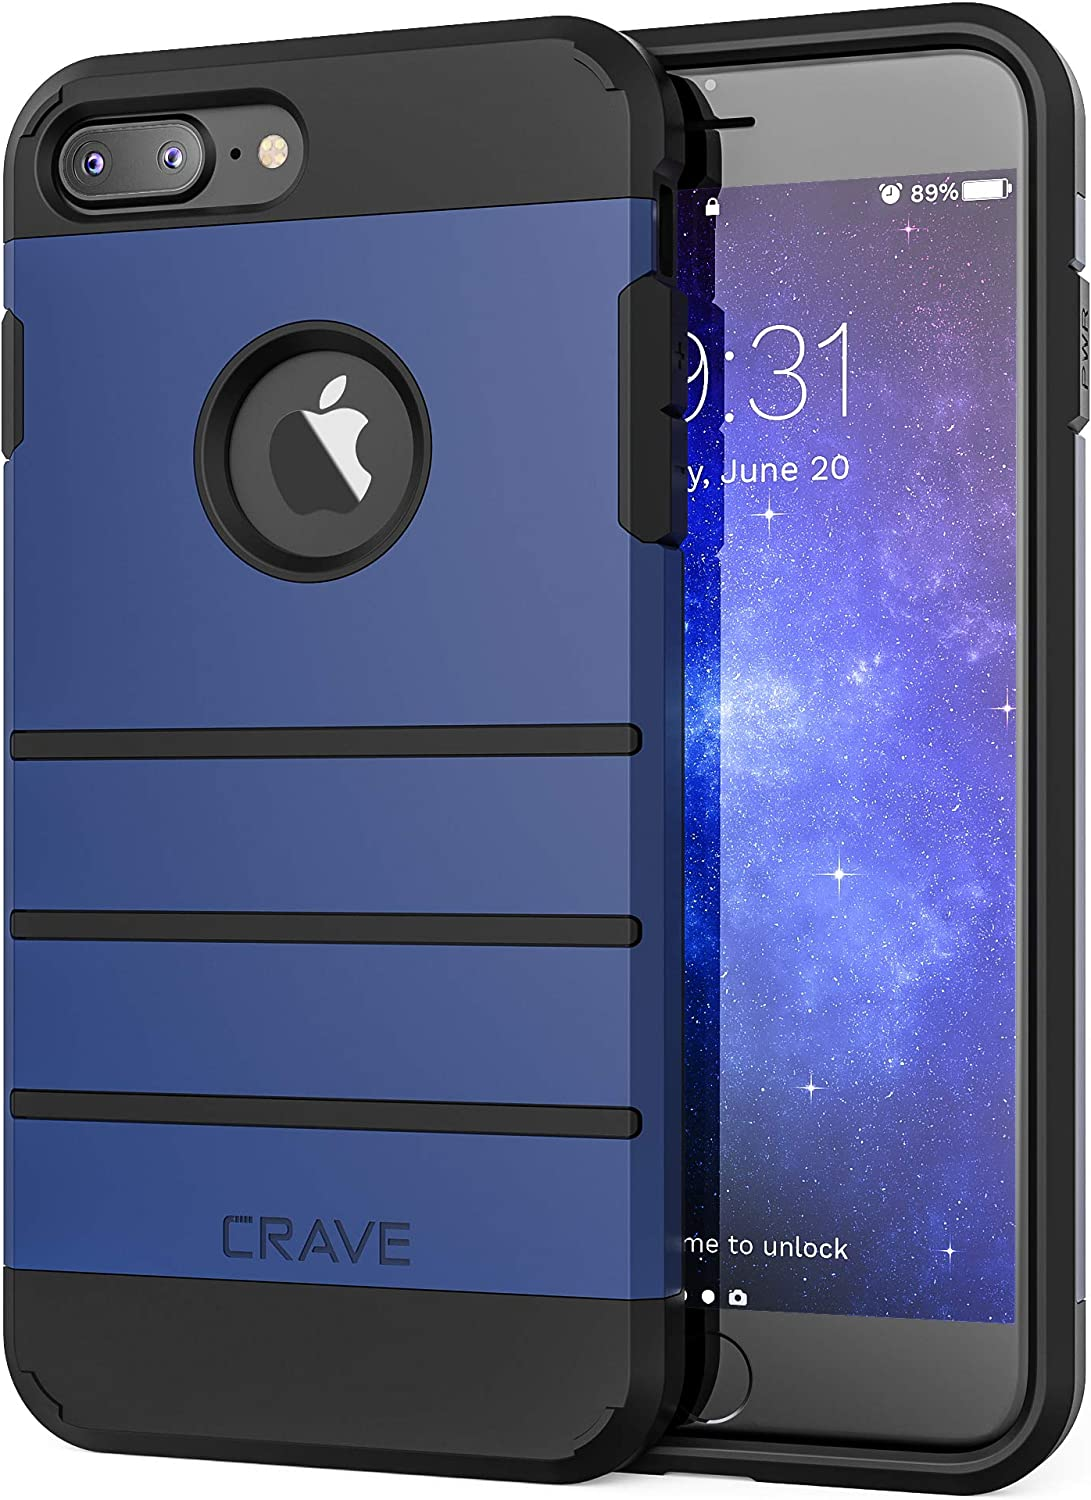 Crave iPhone 8 Plus Case, iPhone 7 Plus Case, Strong Guard Protection Series Case for Apple iPhone 8/7 Plus (5.5 Inch) - Navy